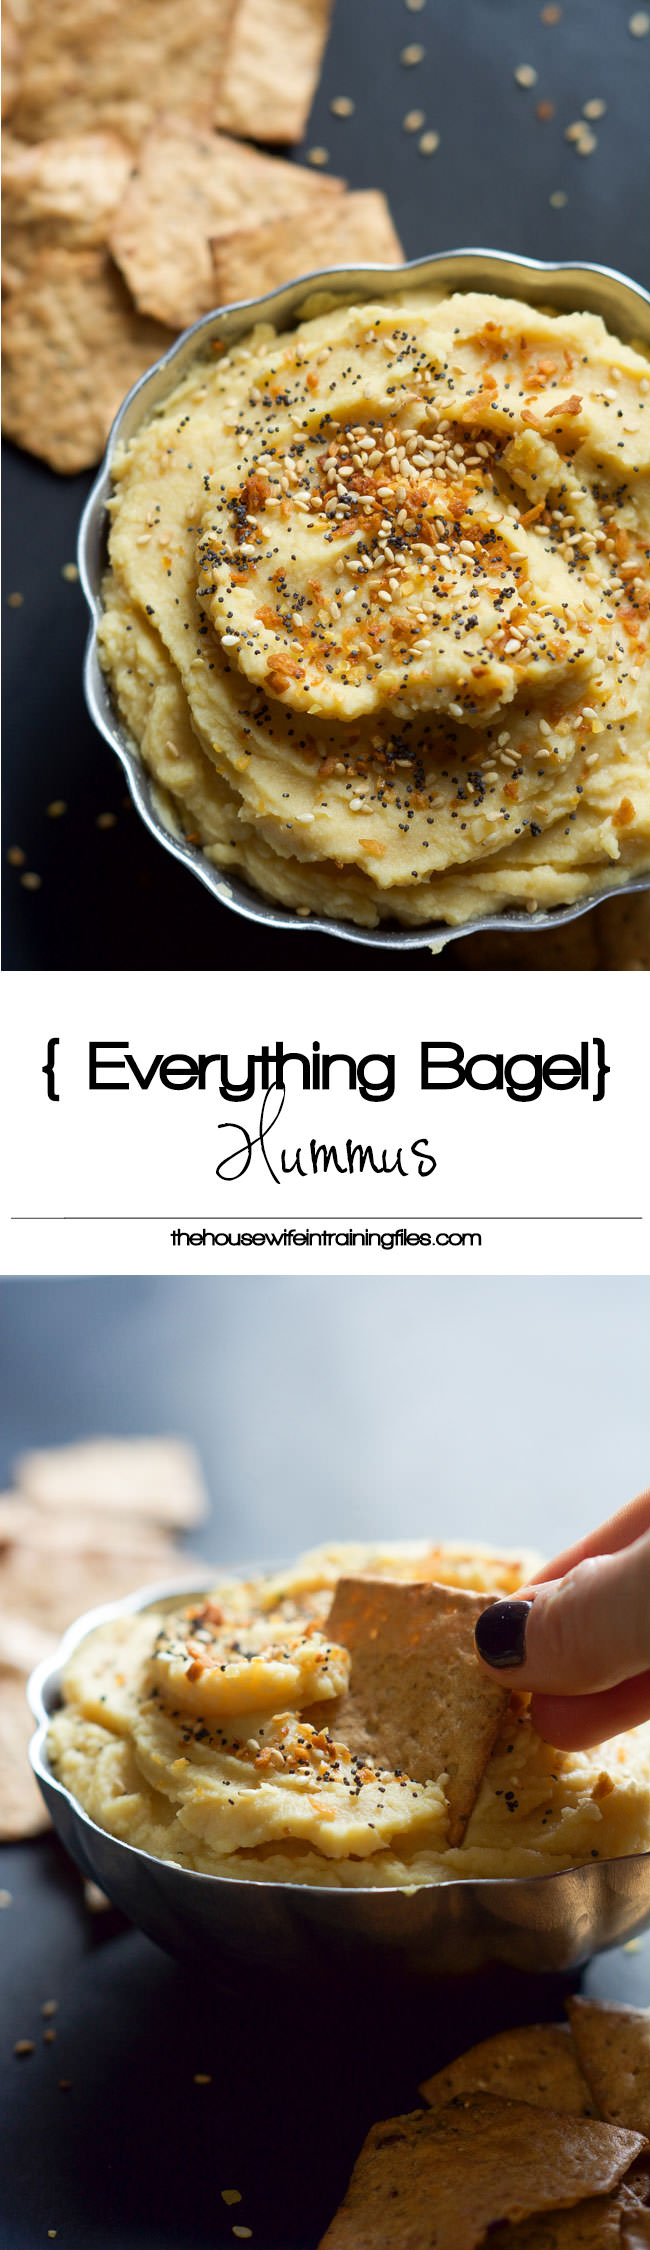 Everything Bagel Hummus has all the flavors you love of those classic bagels but in a healthy, gluten free form! Creamy chickpeas mixed with toasted garlic, dried onions then sprinkled with sesame seeds and poppy seeds!